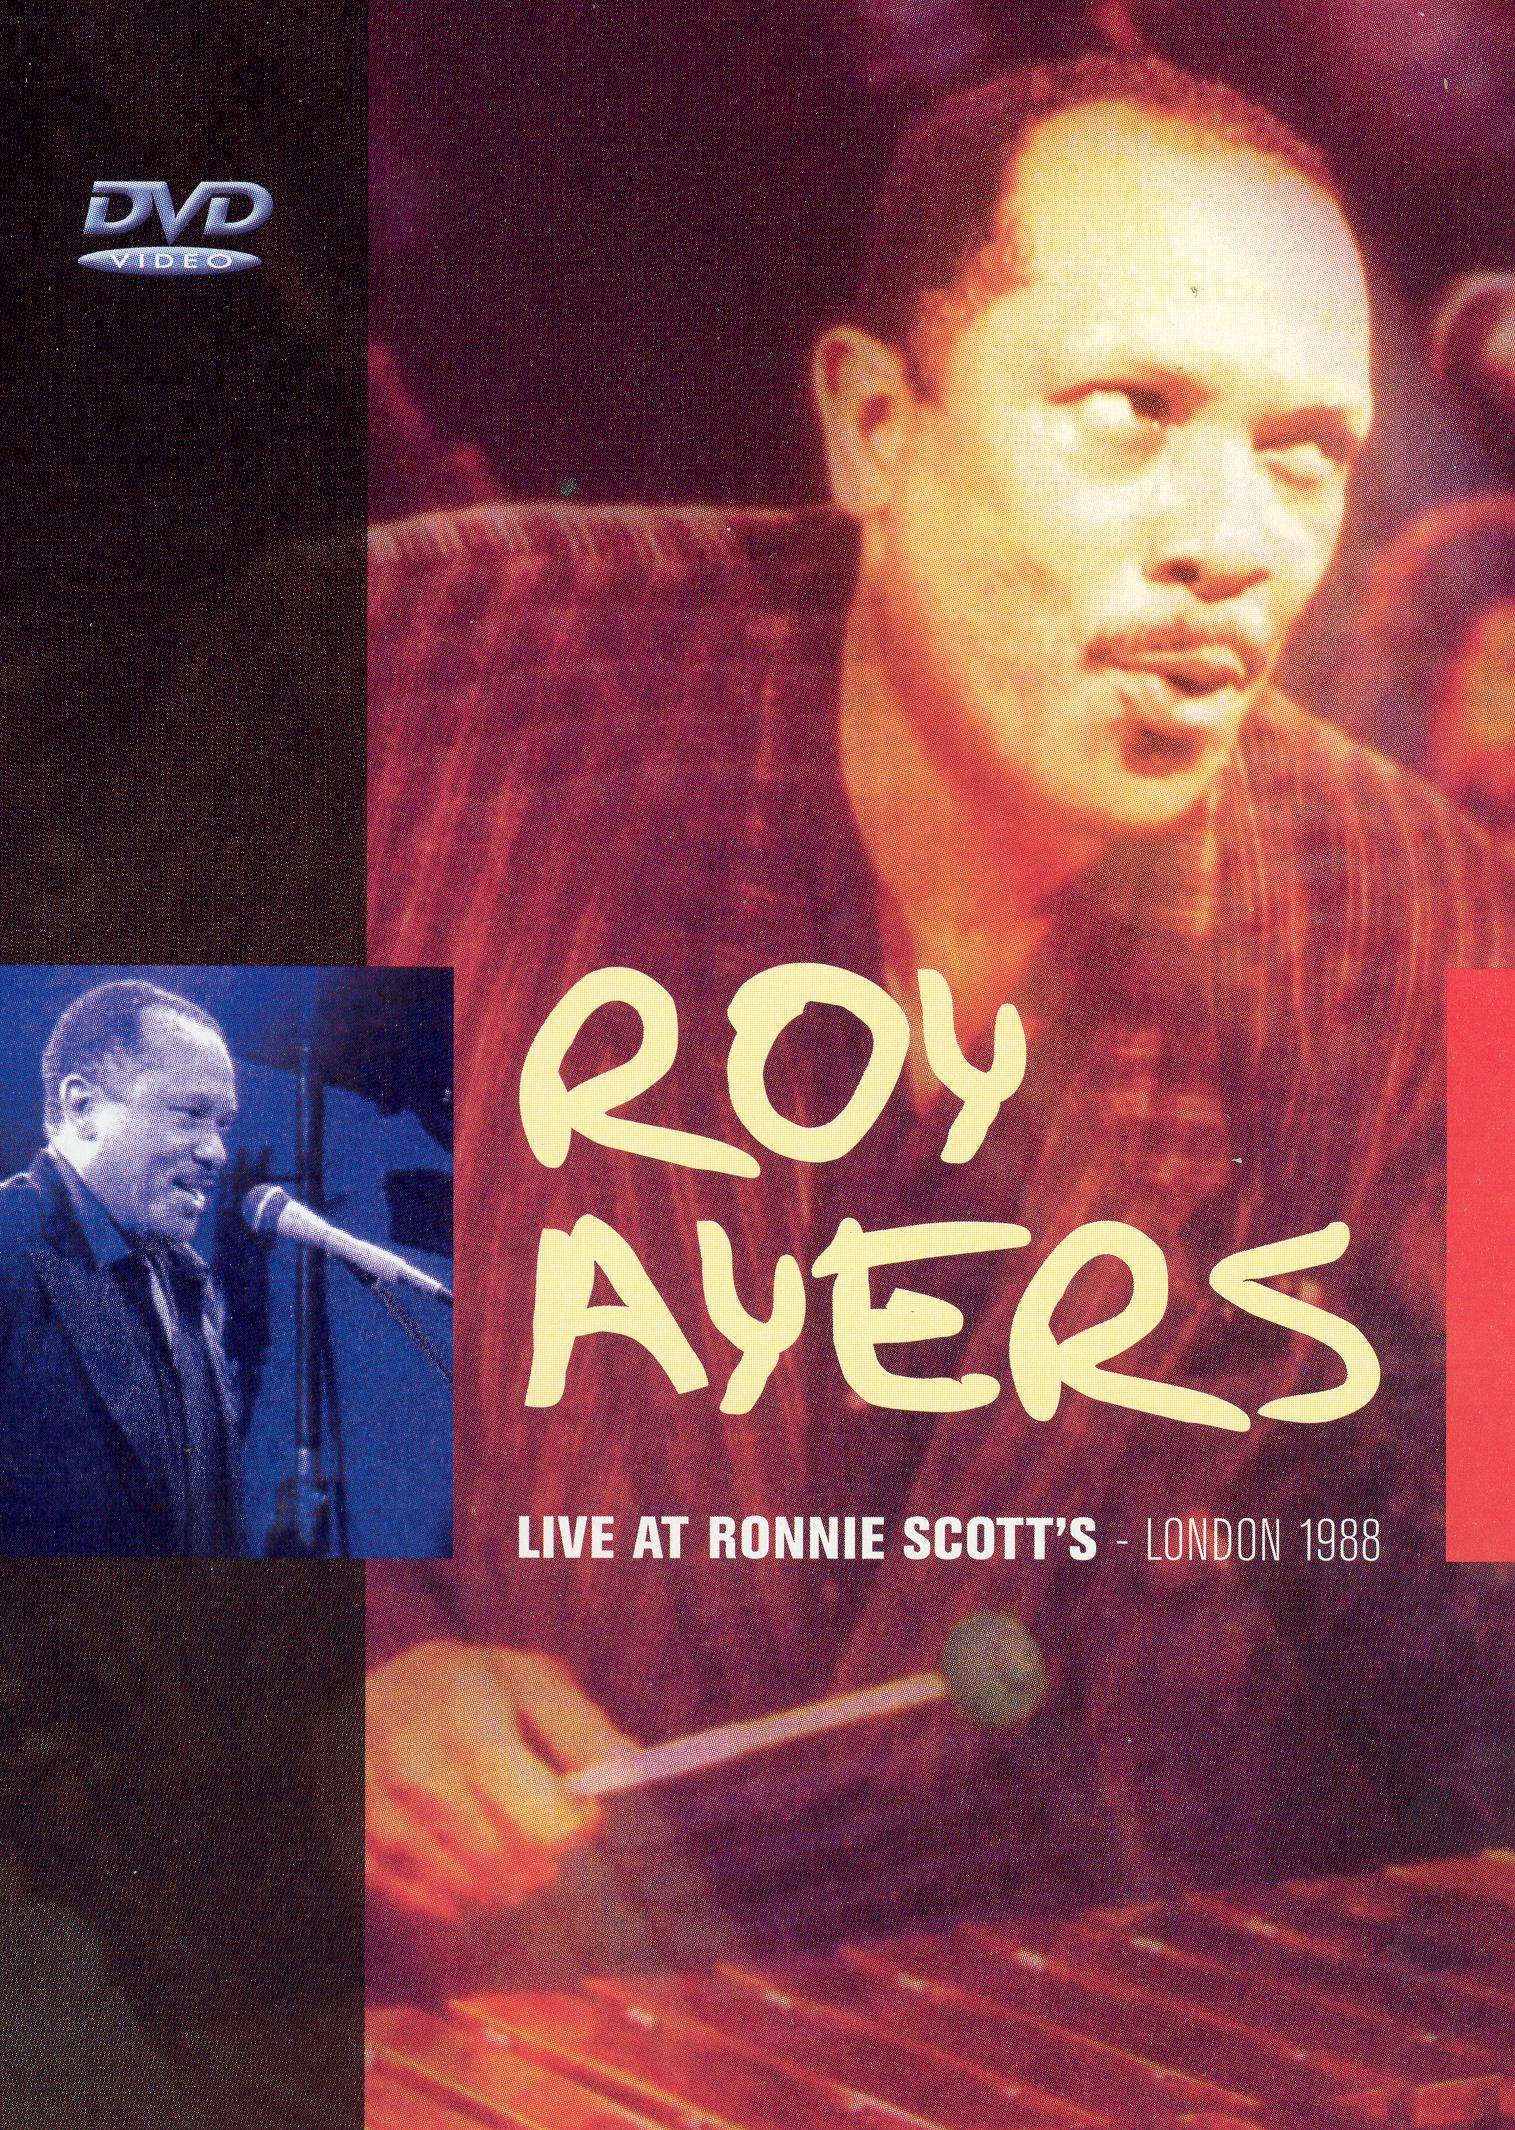 Roy Ayers: Live at Ronnie Scott's